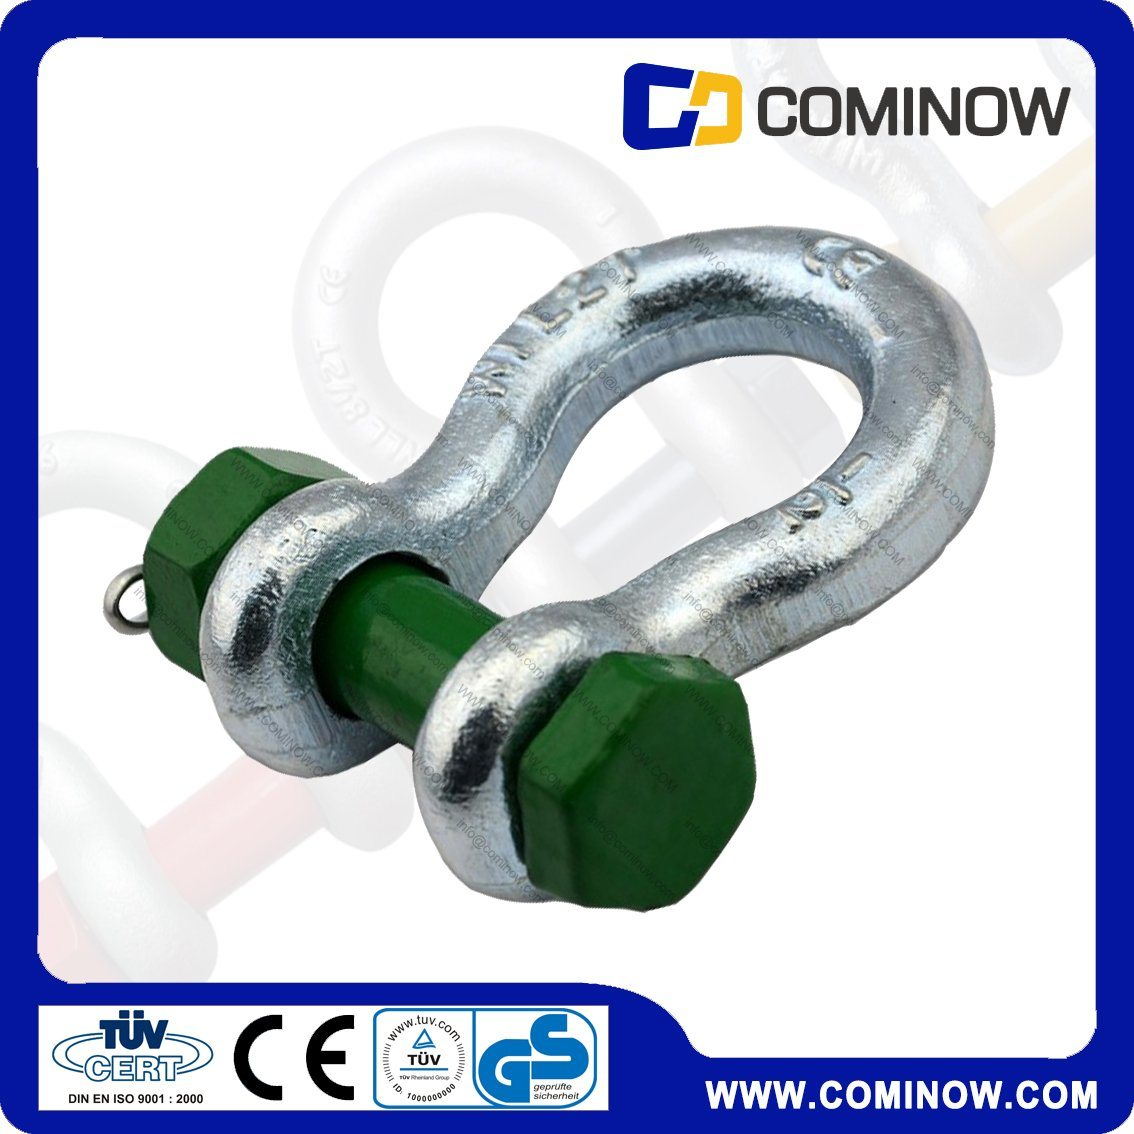 G2130 Us Type Carbon Steel Anchor Shackle with Safety Bolt / Drop Forged Bow Shackle Galvanized